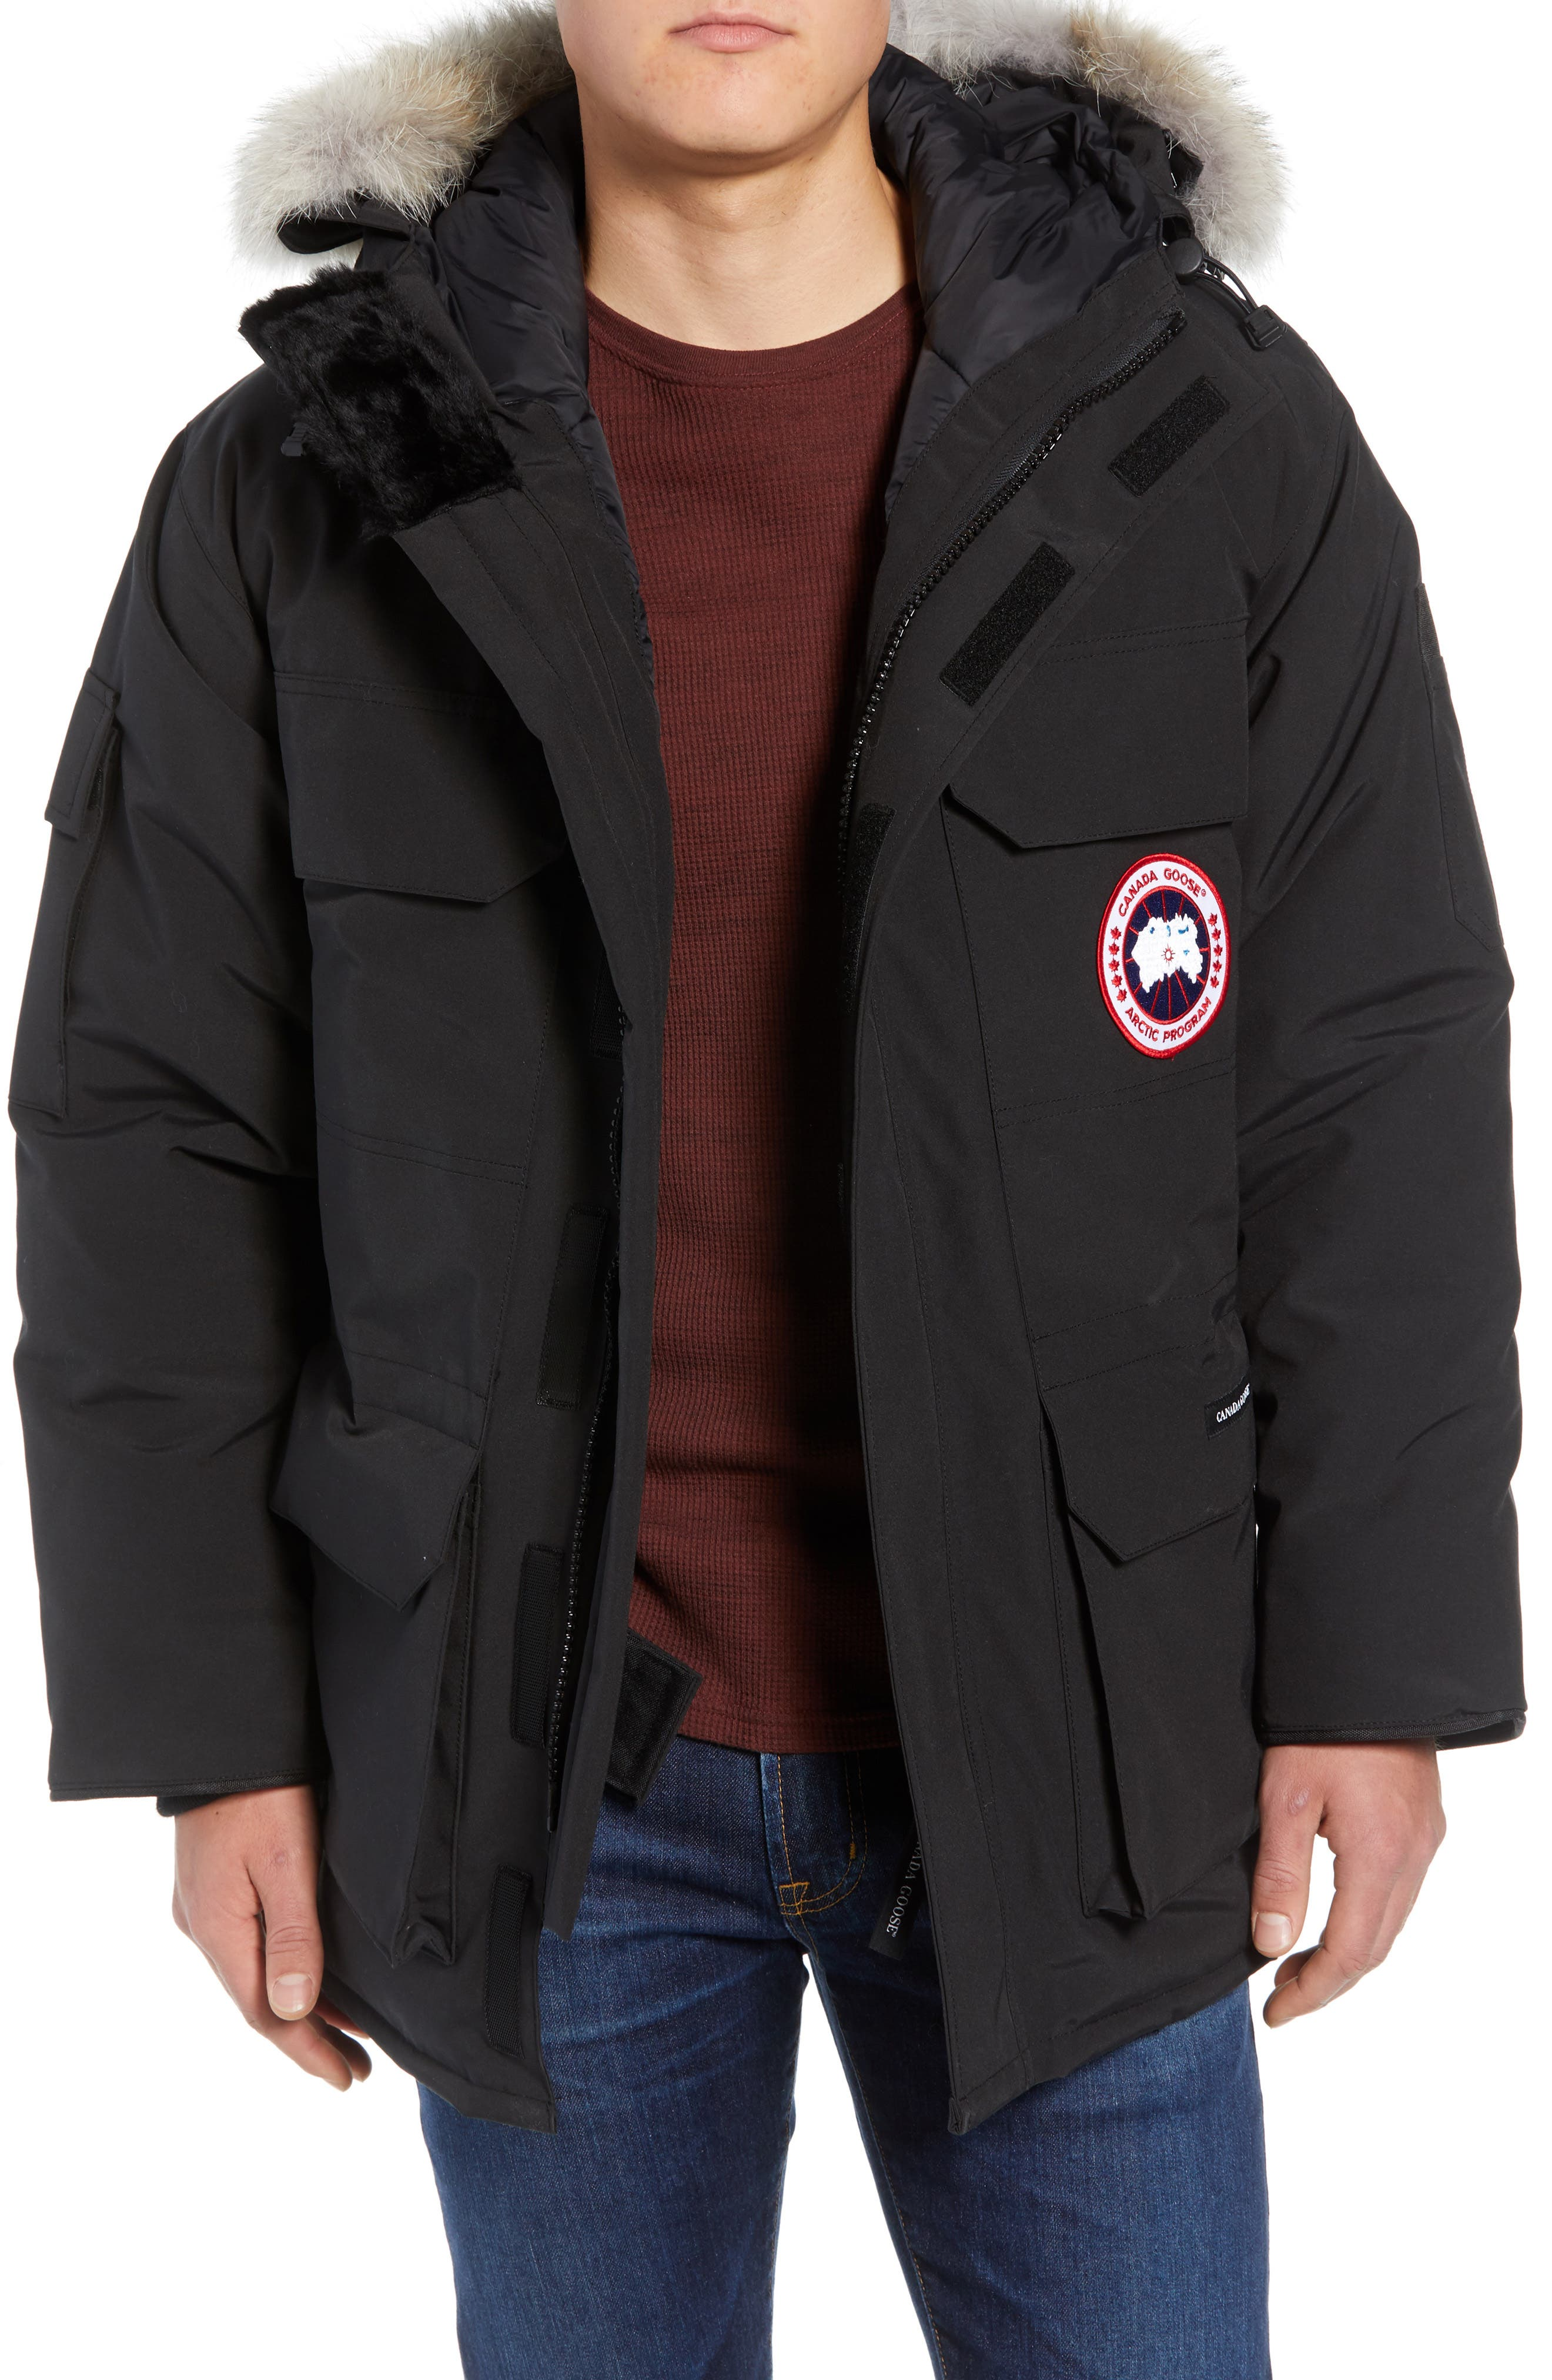 PBI Expedition Regular Fit Down Parka with Genuine Coyote Fur Trim,                         Main,                         color, 001